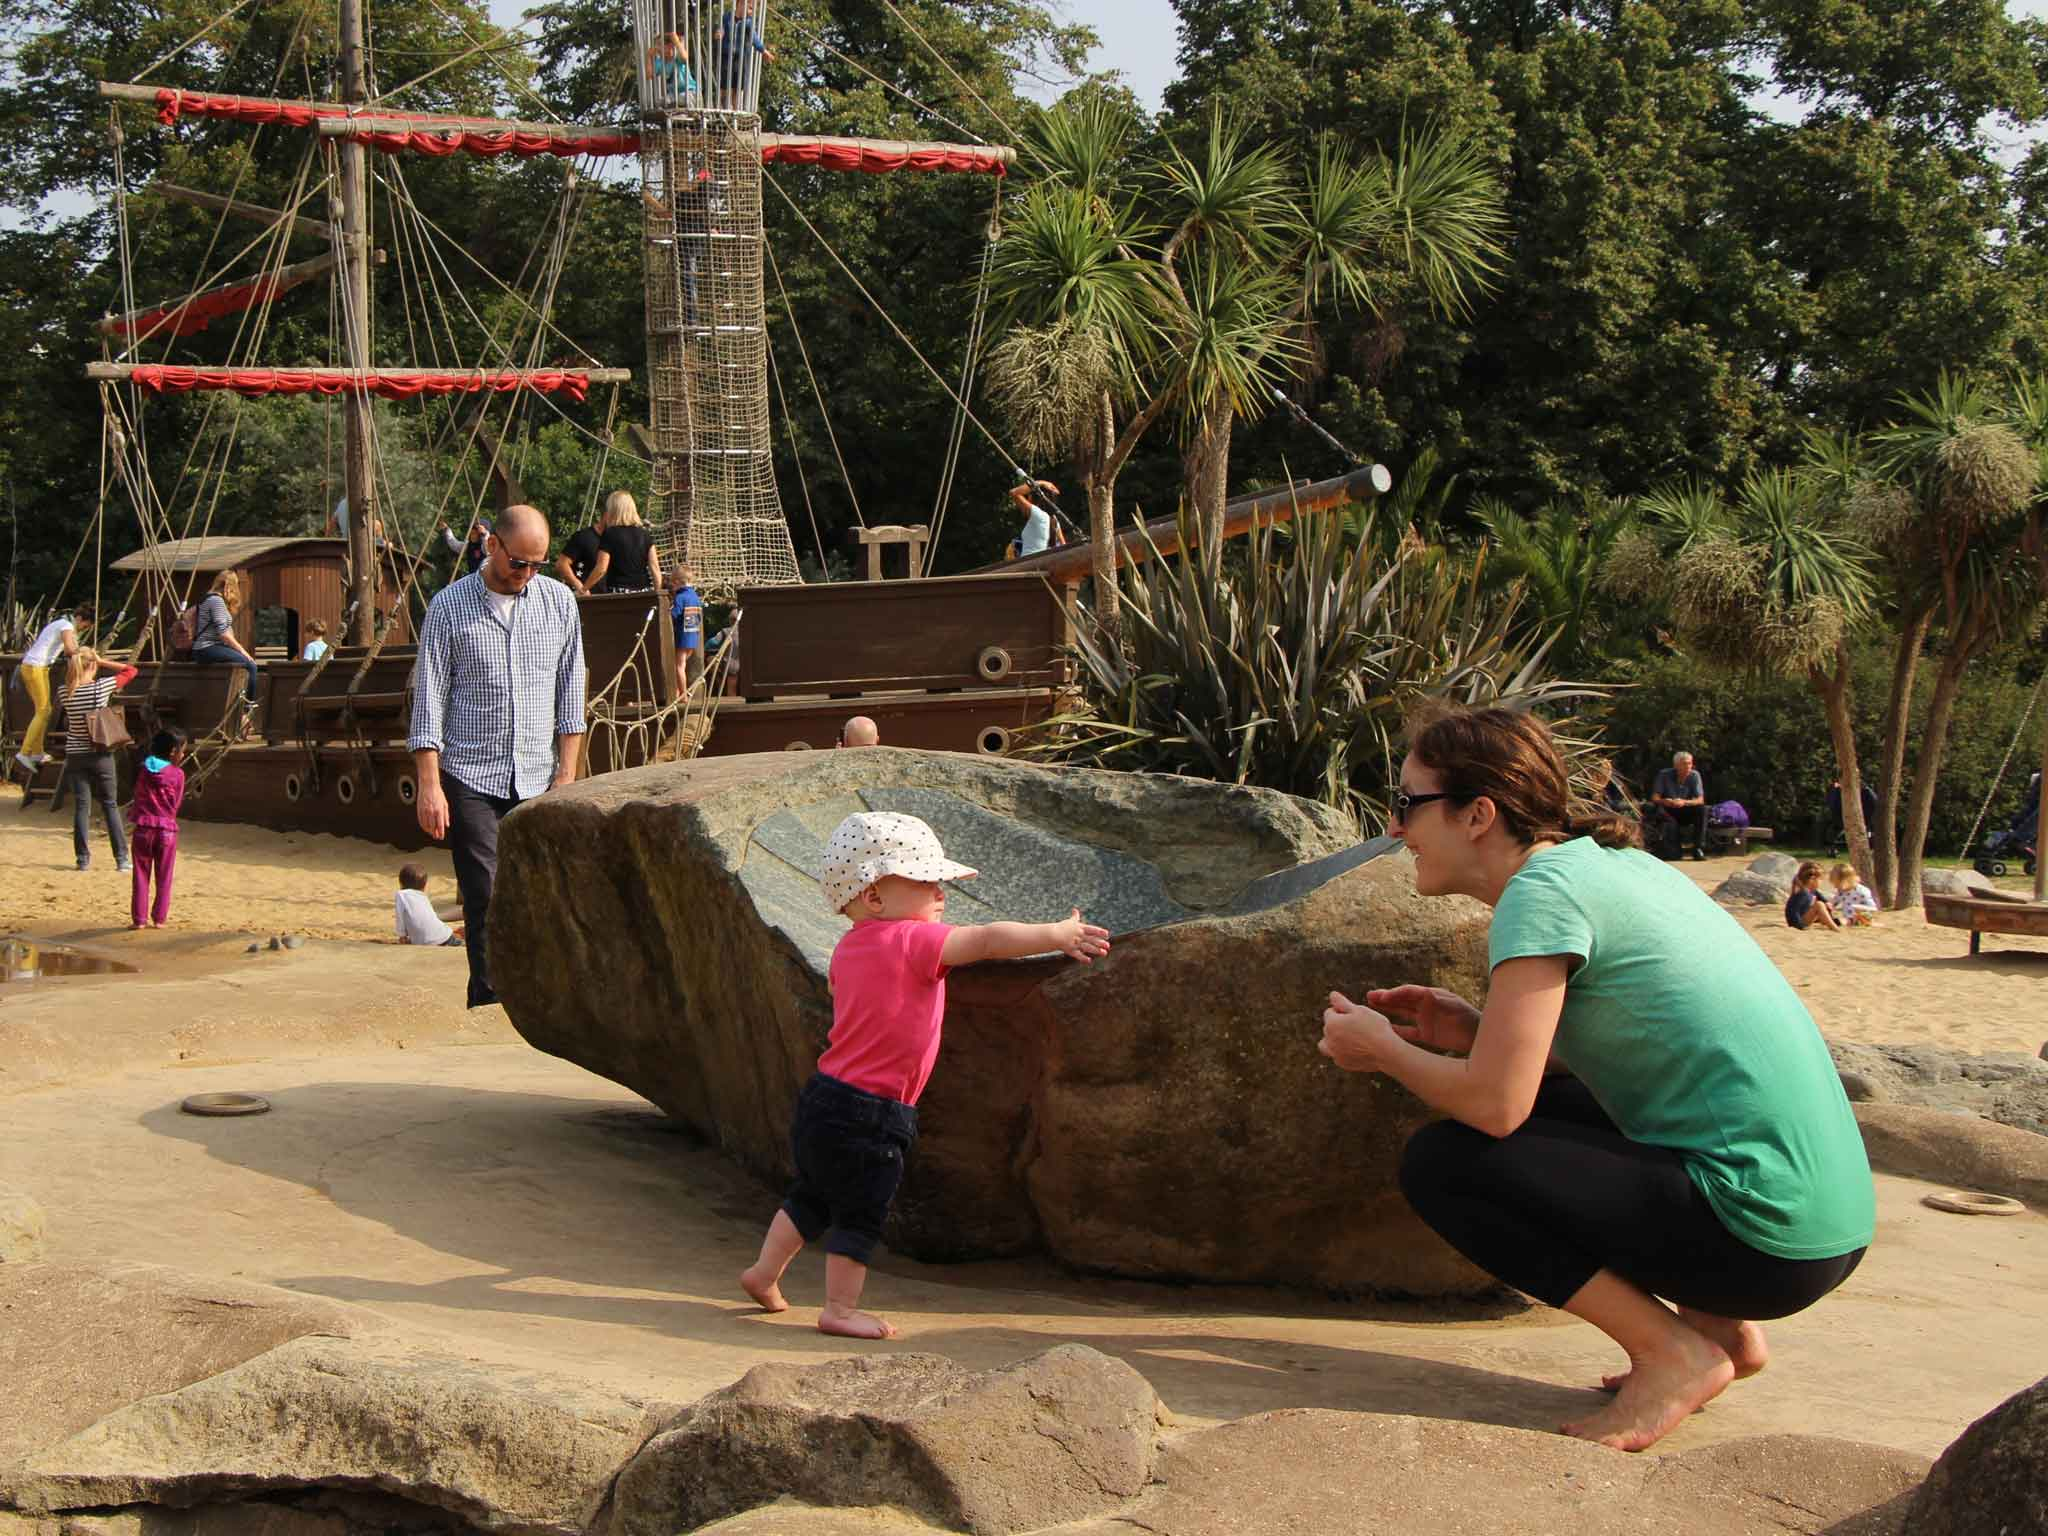 Baby Can Travel - London Playgrounds and Parks for Babies or Toddlers - Diana Memorial Playground